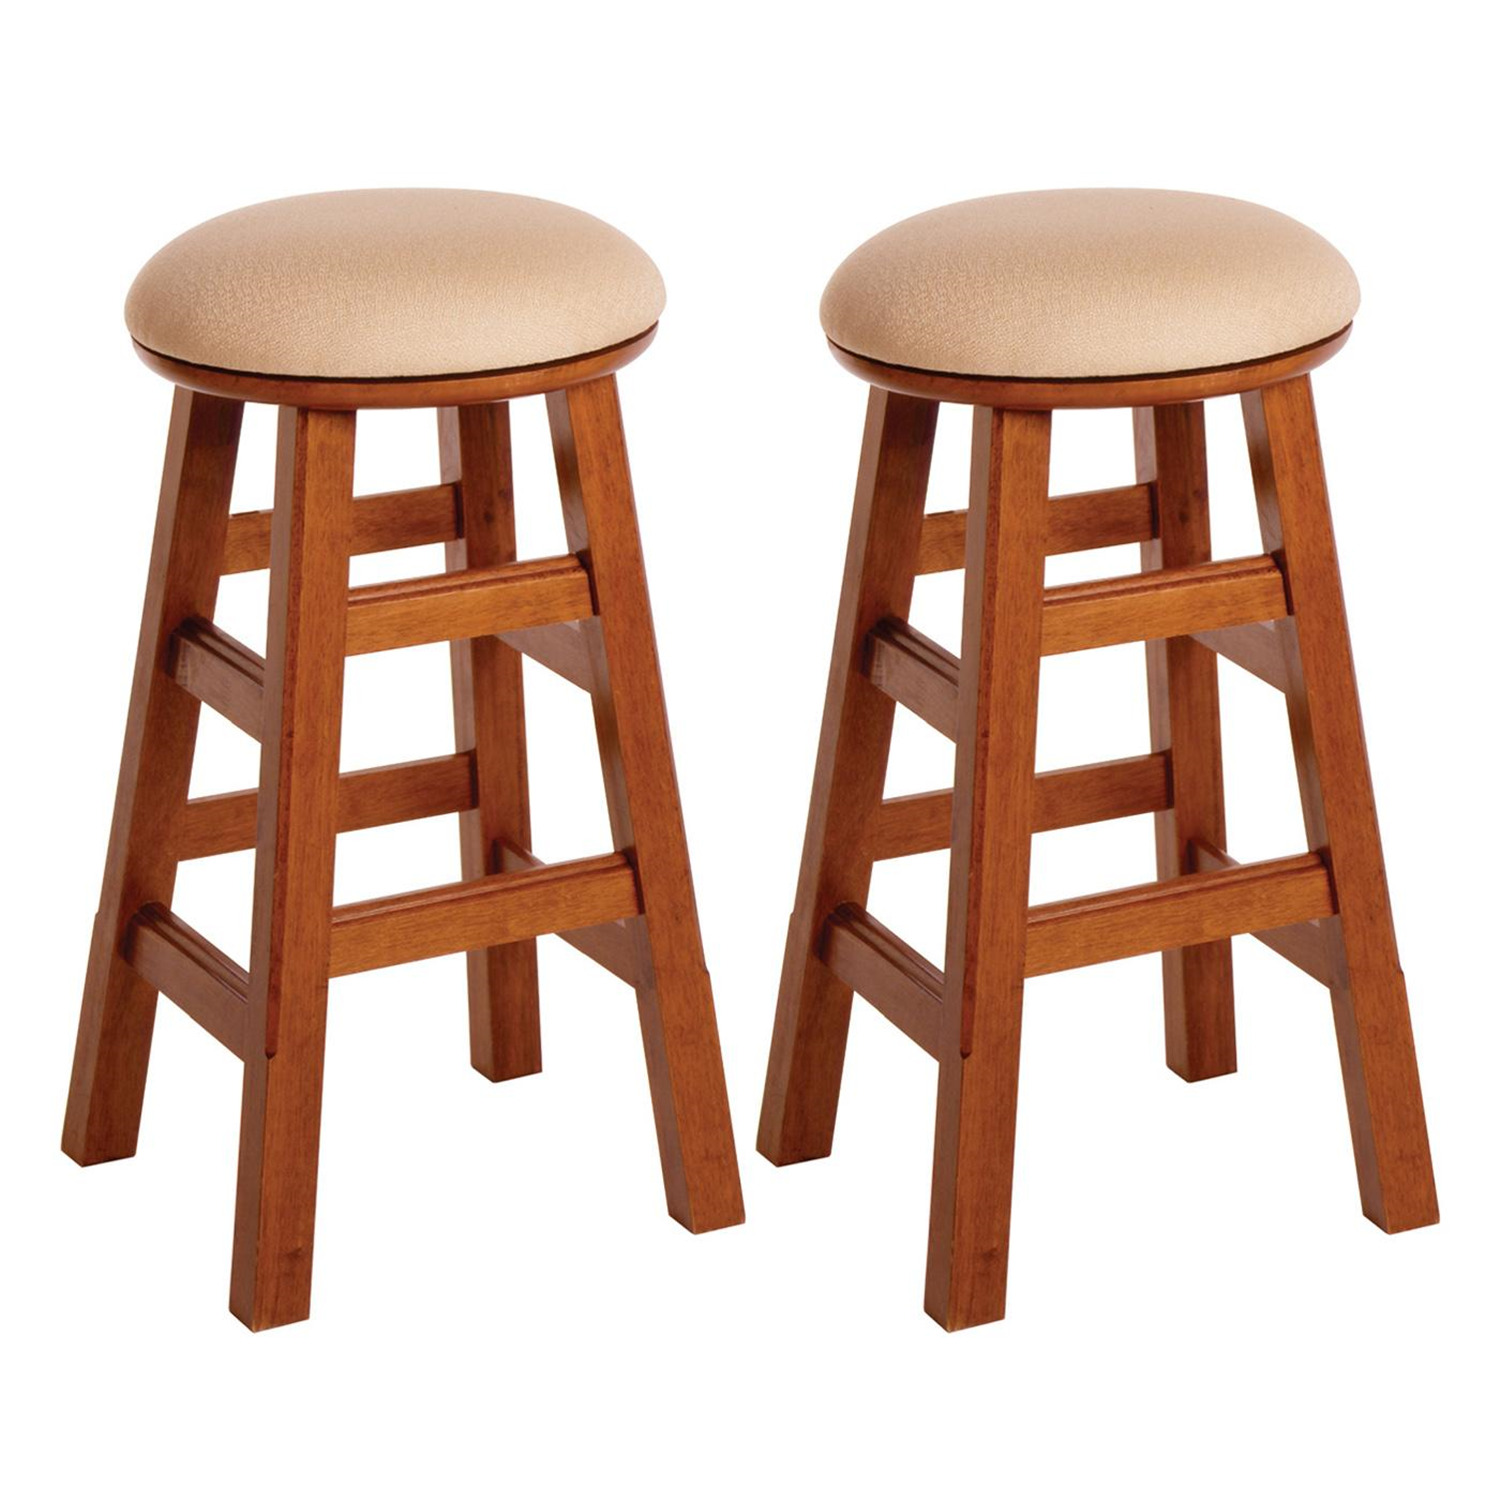 Winsome Set Of 2 26 Quot Padded Swivel Stool Assembled By Oj